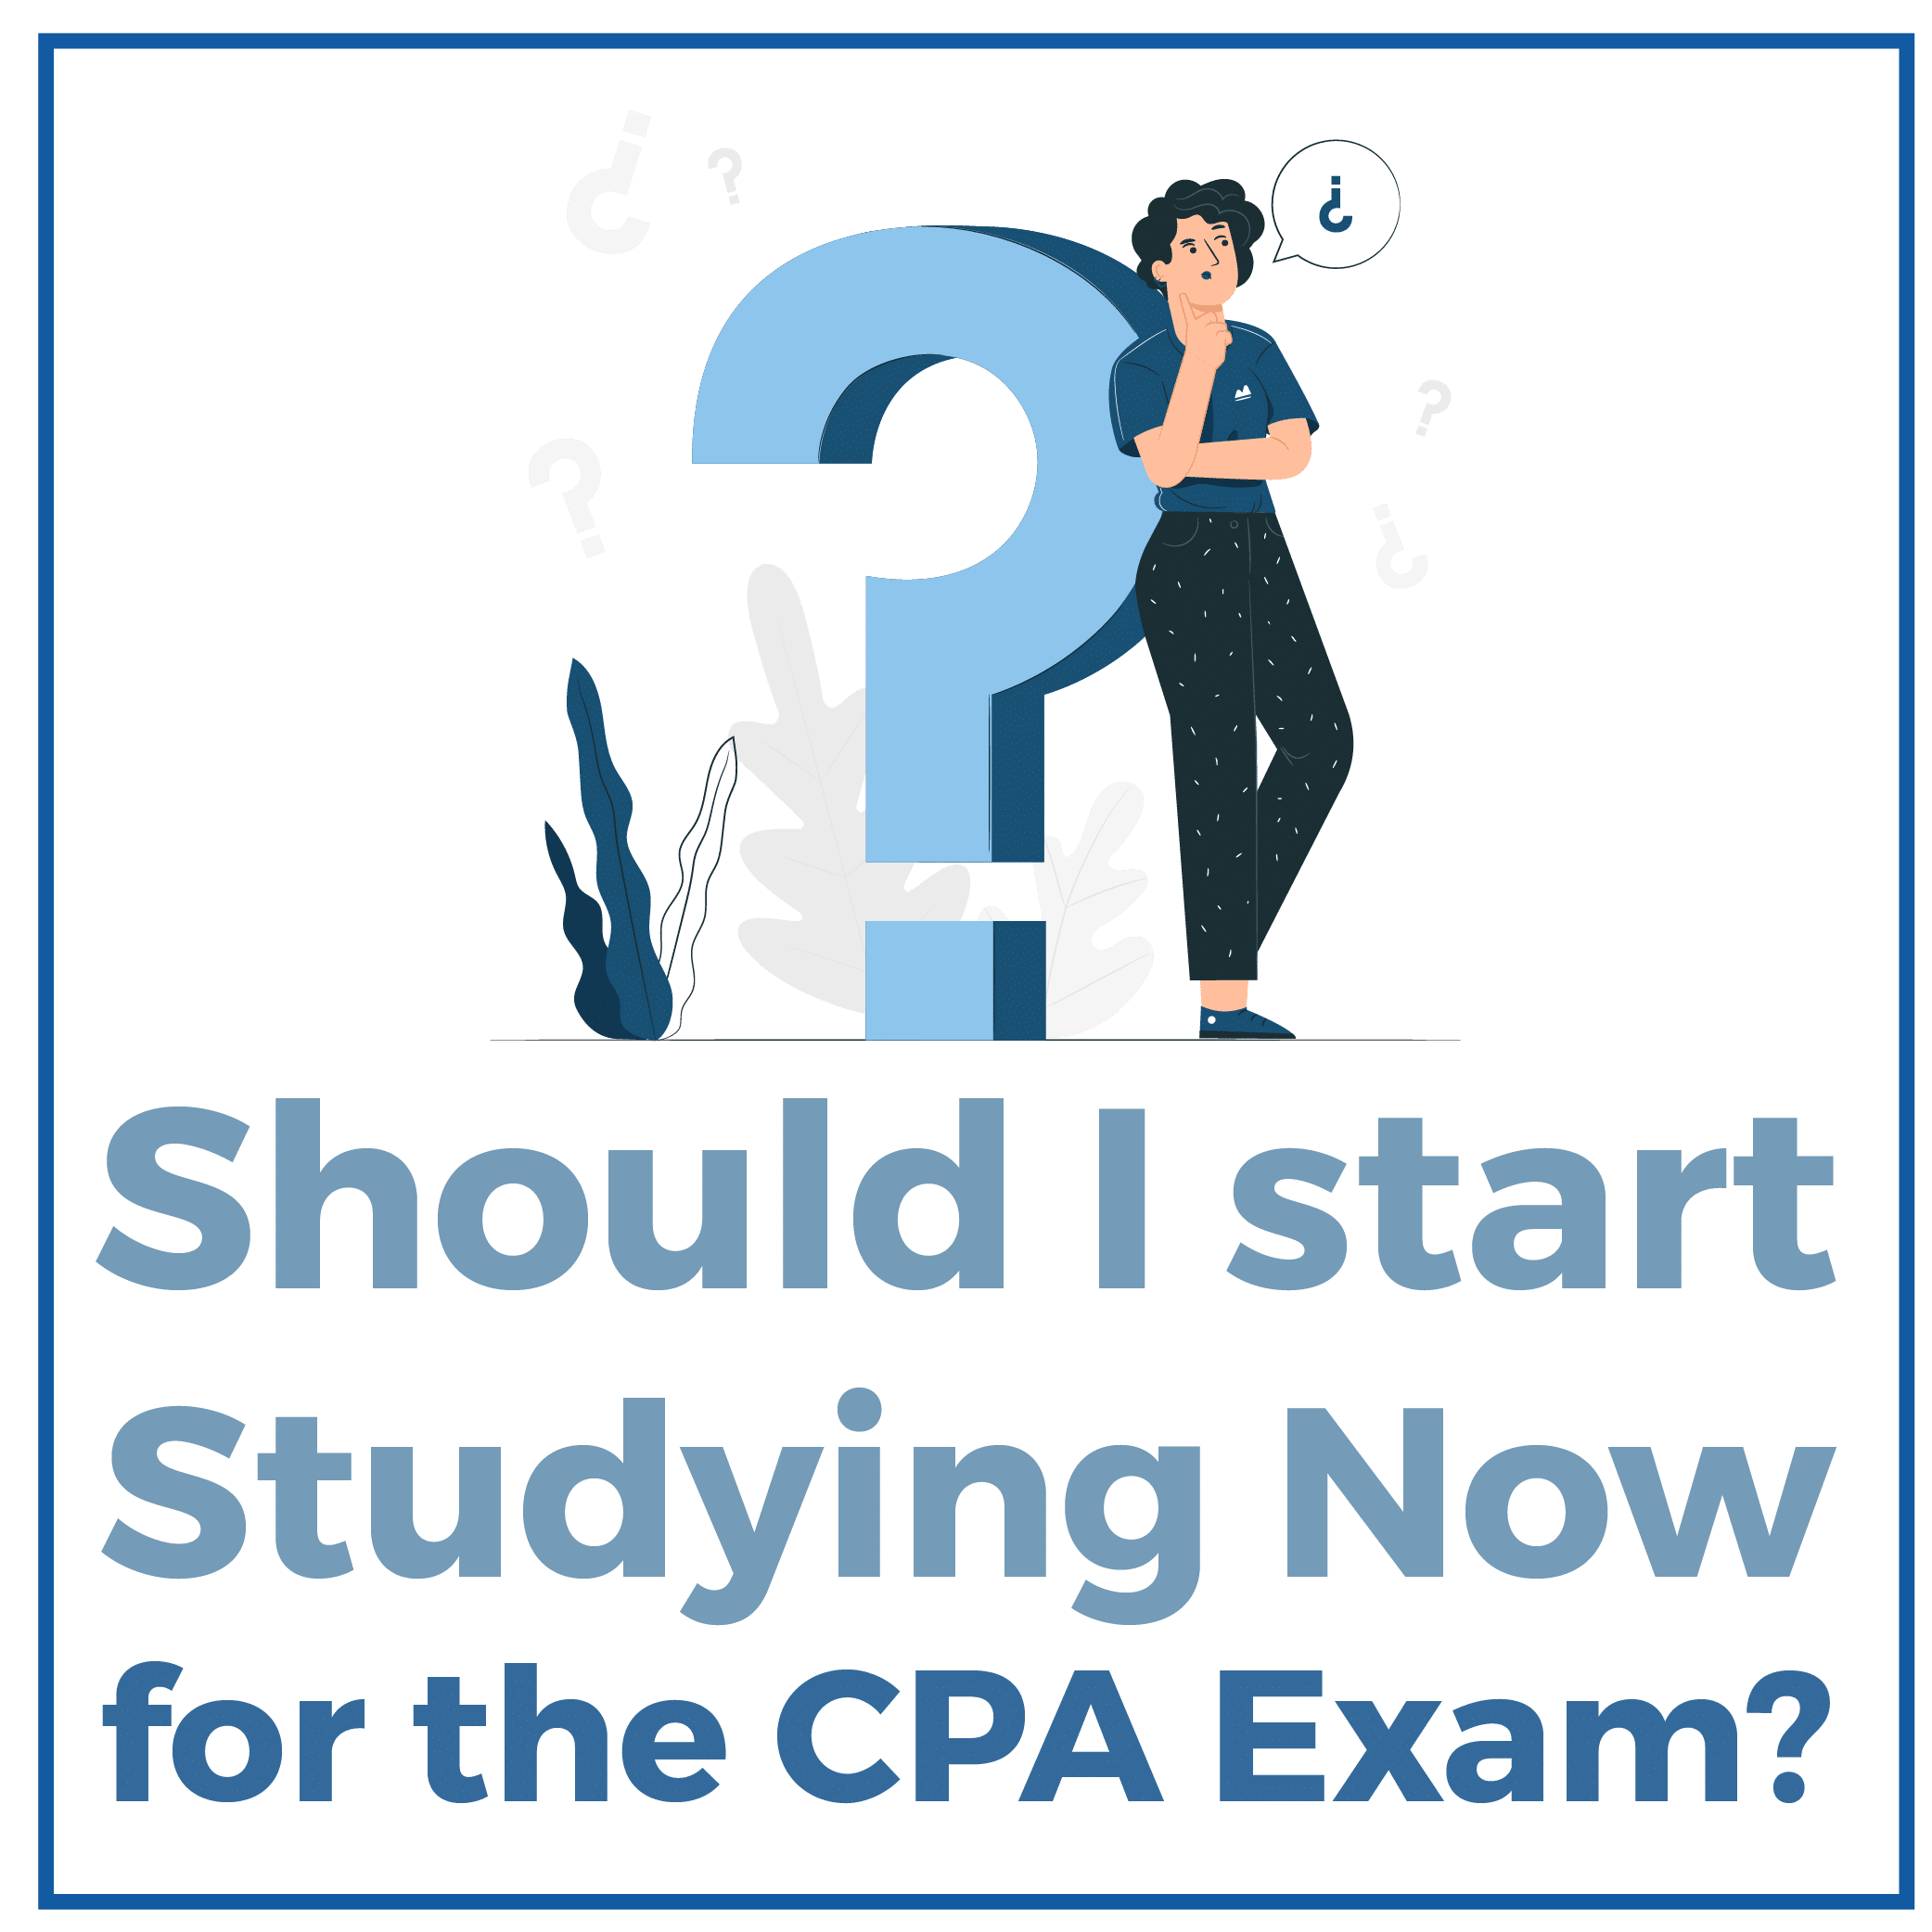 Should I Start Studying Now for the CPA Exam?